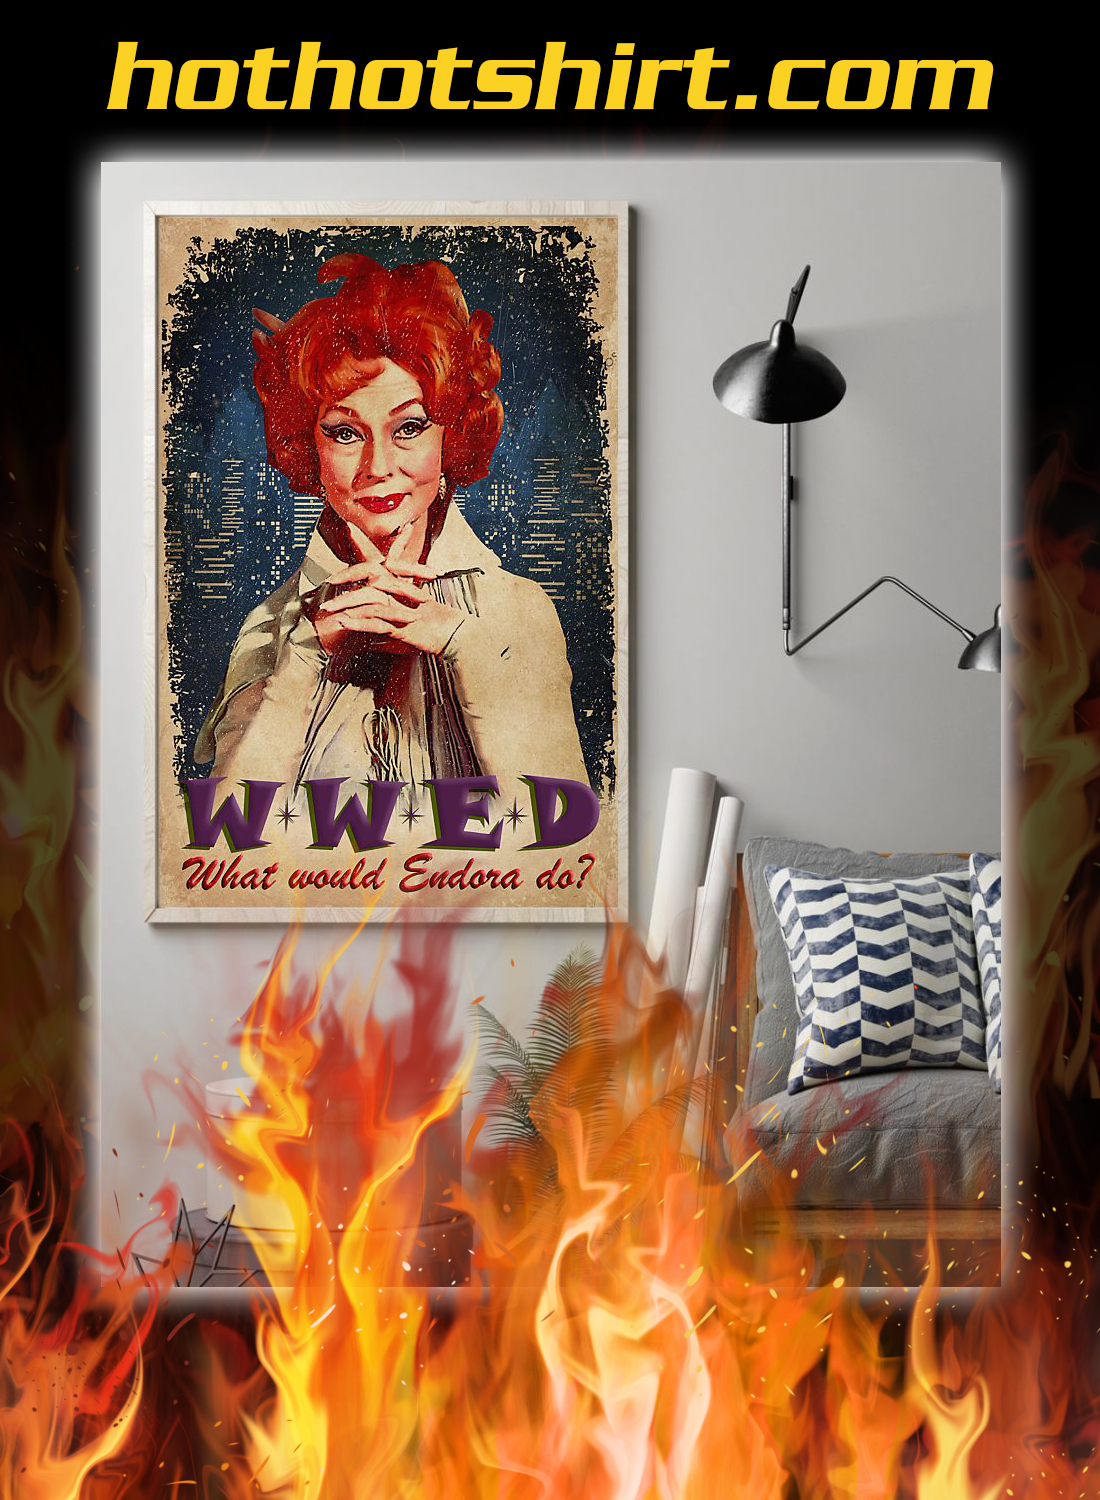 WWED what whould endora do poster 1